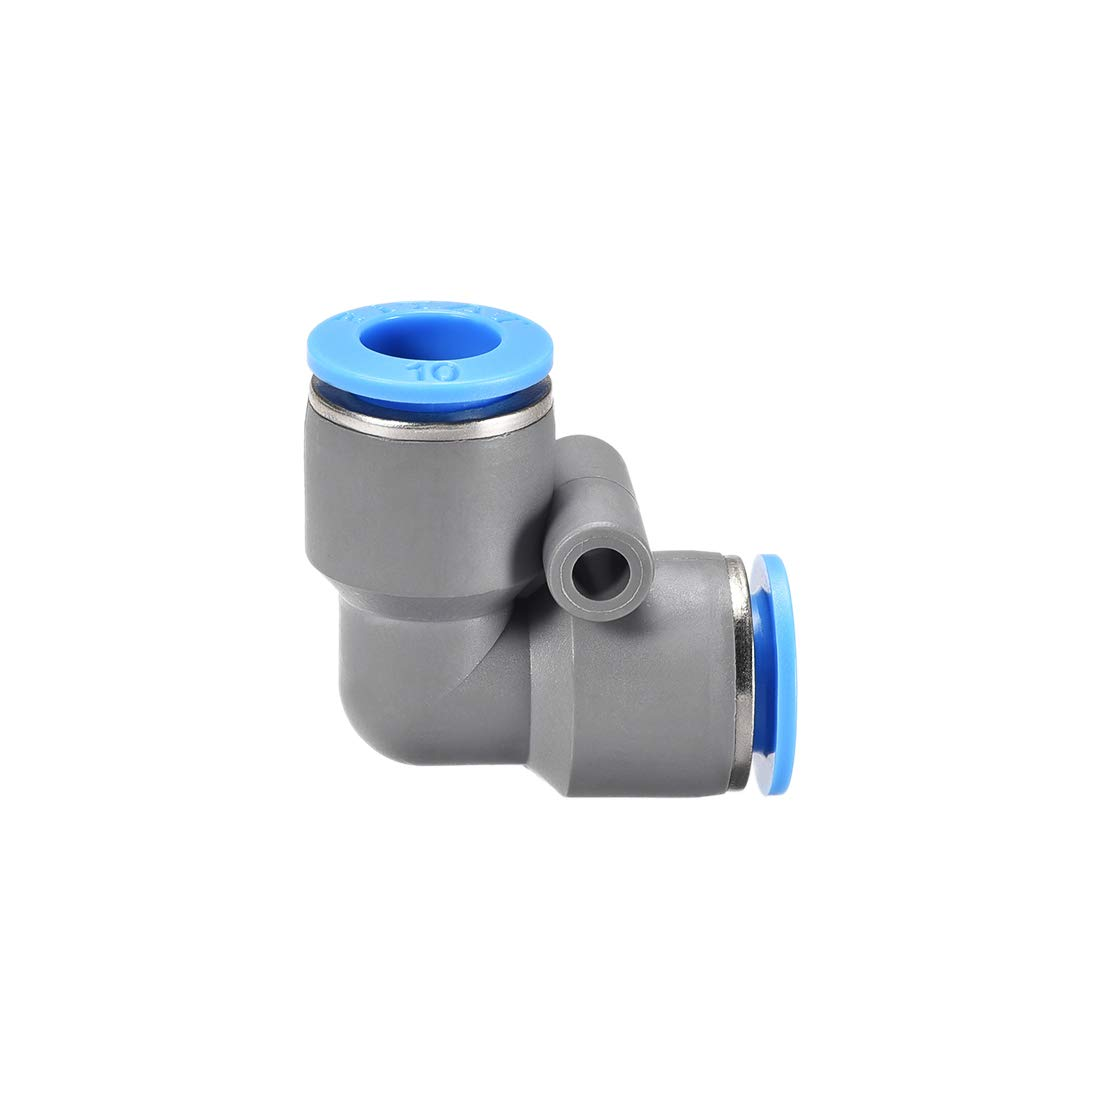 uxcell Elbow Push to Connect Air Fittings 10mm Tube OD Pneumatic Quick Release Connectors Grey 2Pcs